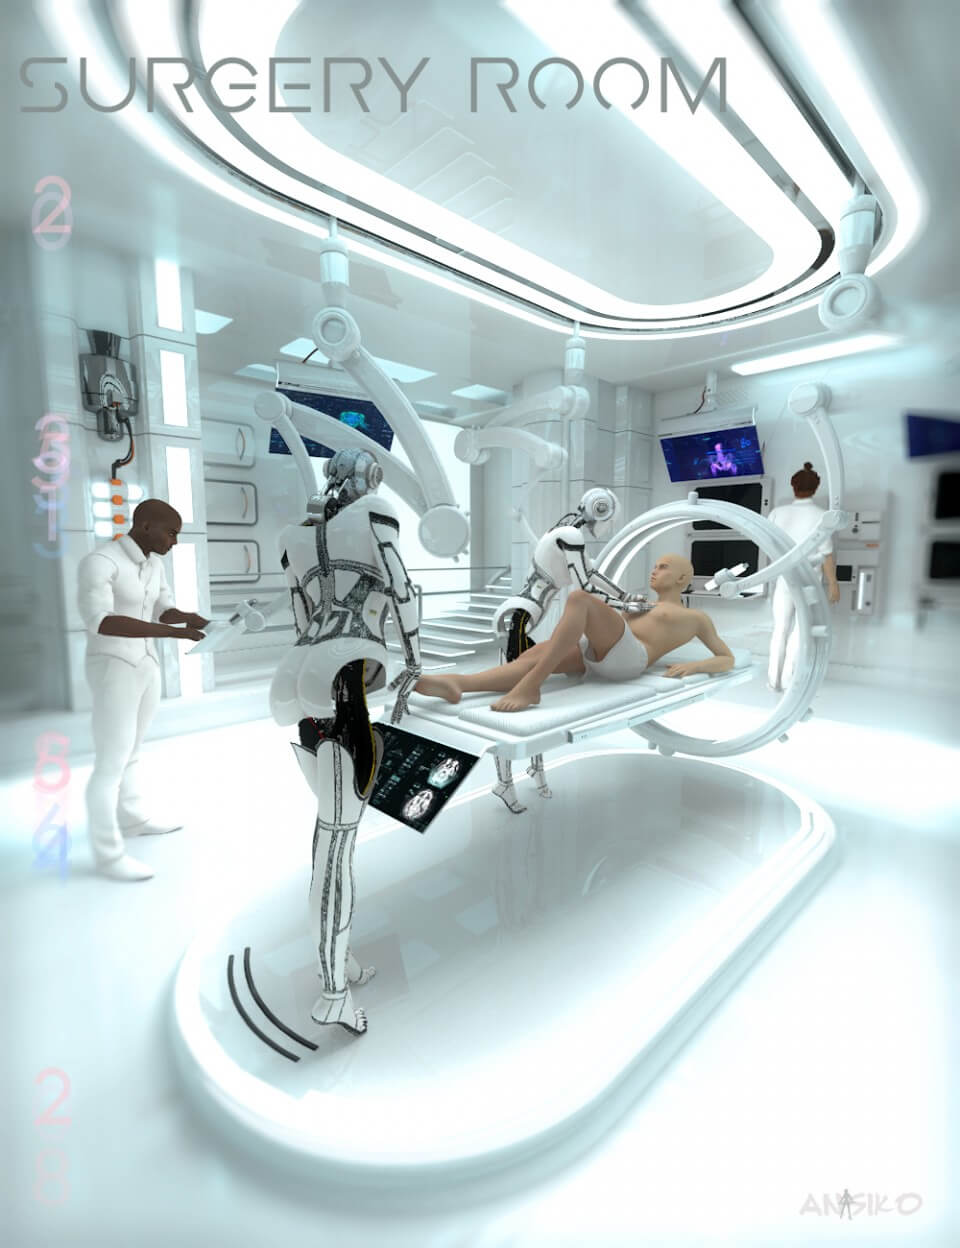 3d-modell operationssaal 3d-model surgery room